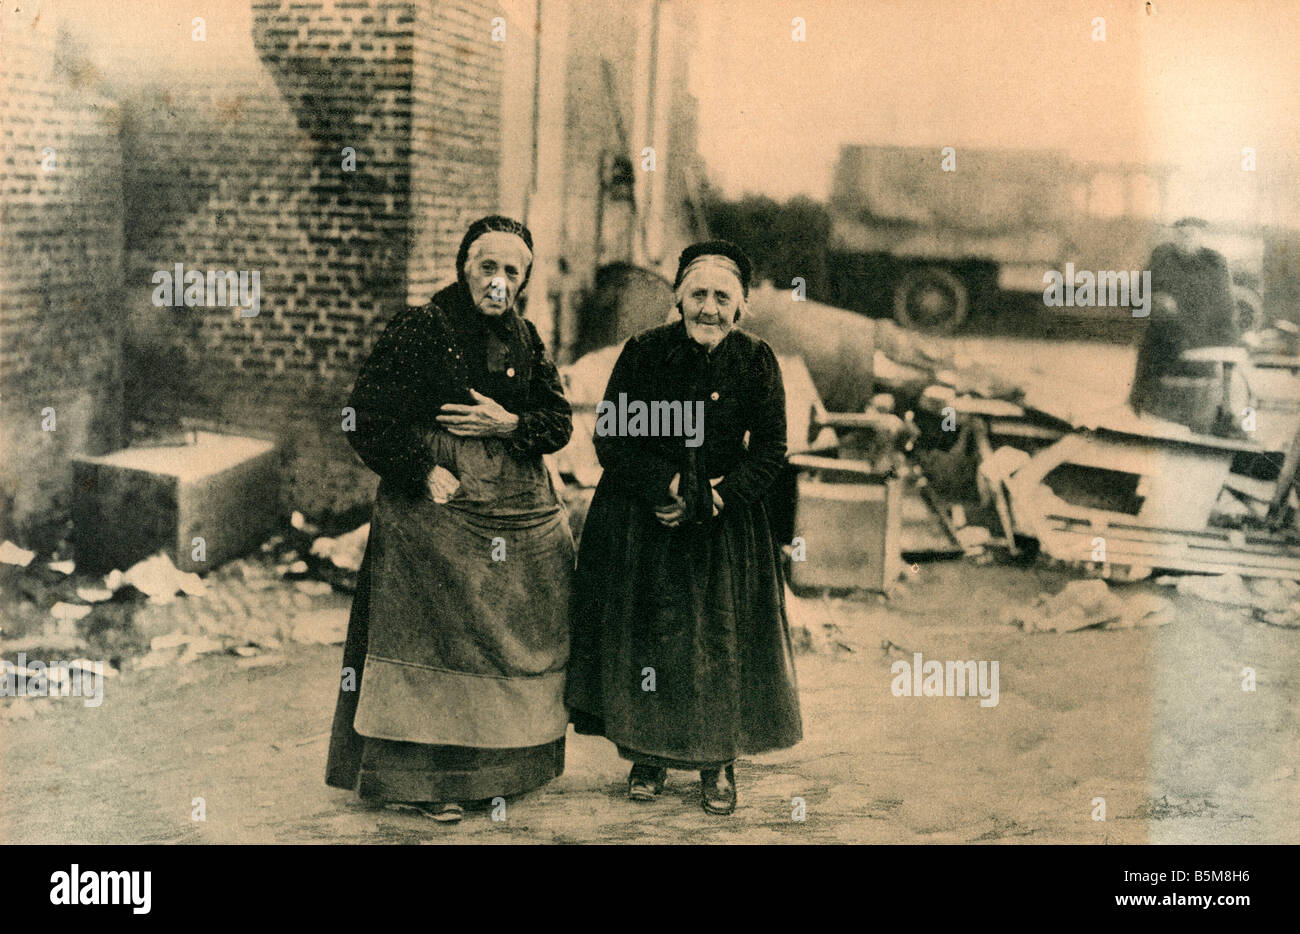 2 G55 F1 1918 18 E WW1 Bailleul Civilians Photo History World War One France Aged residents in destroyed Bailleul - Stock Image